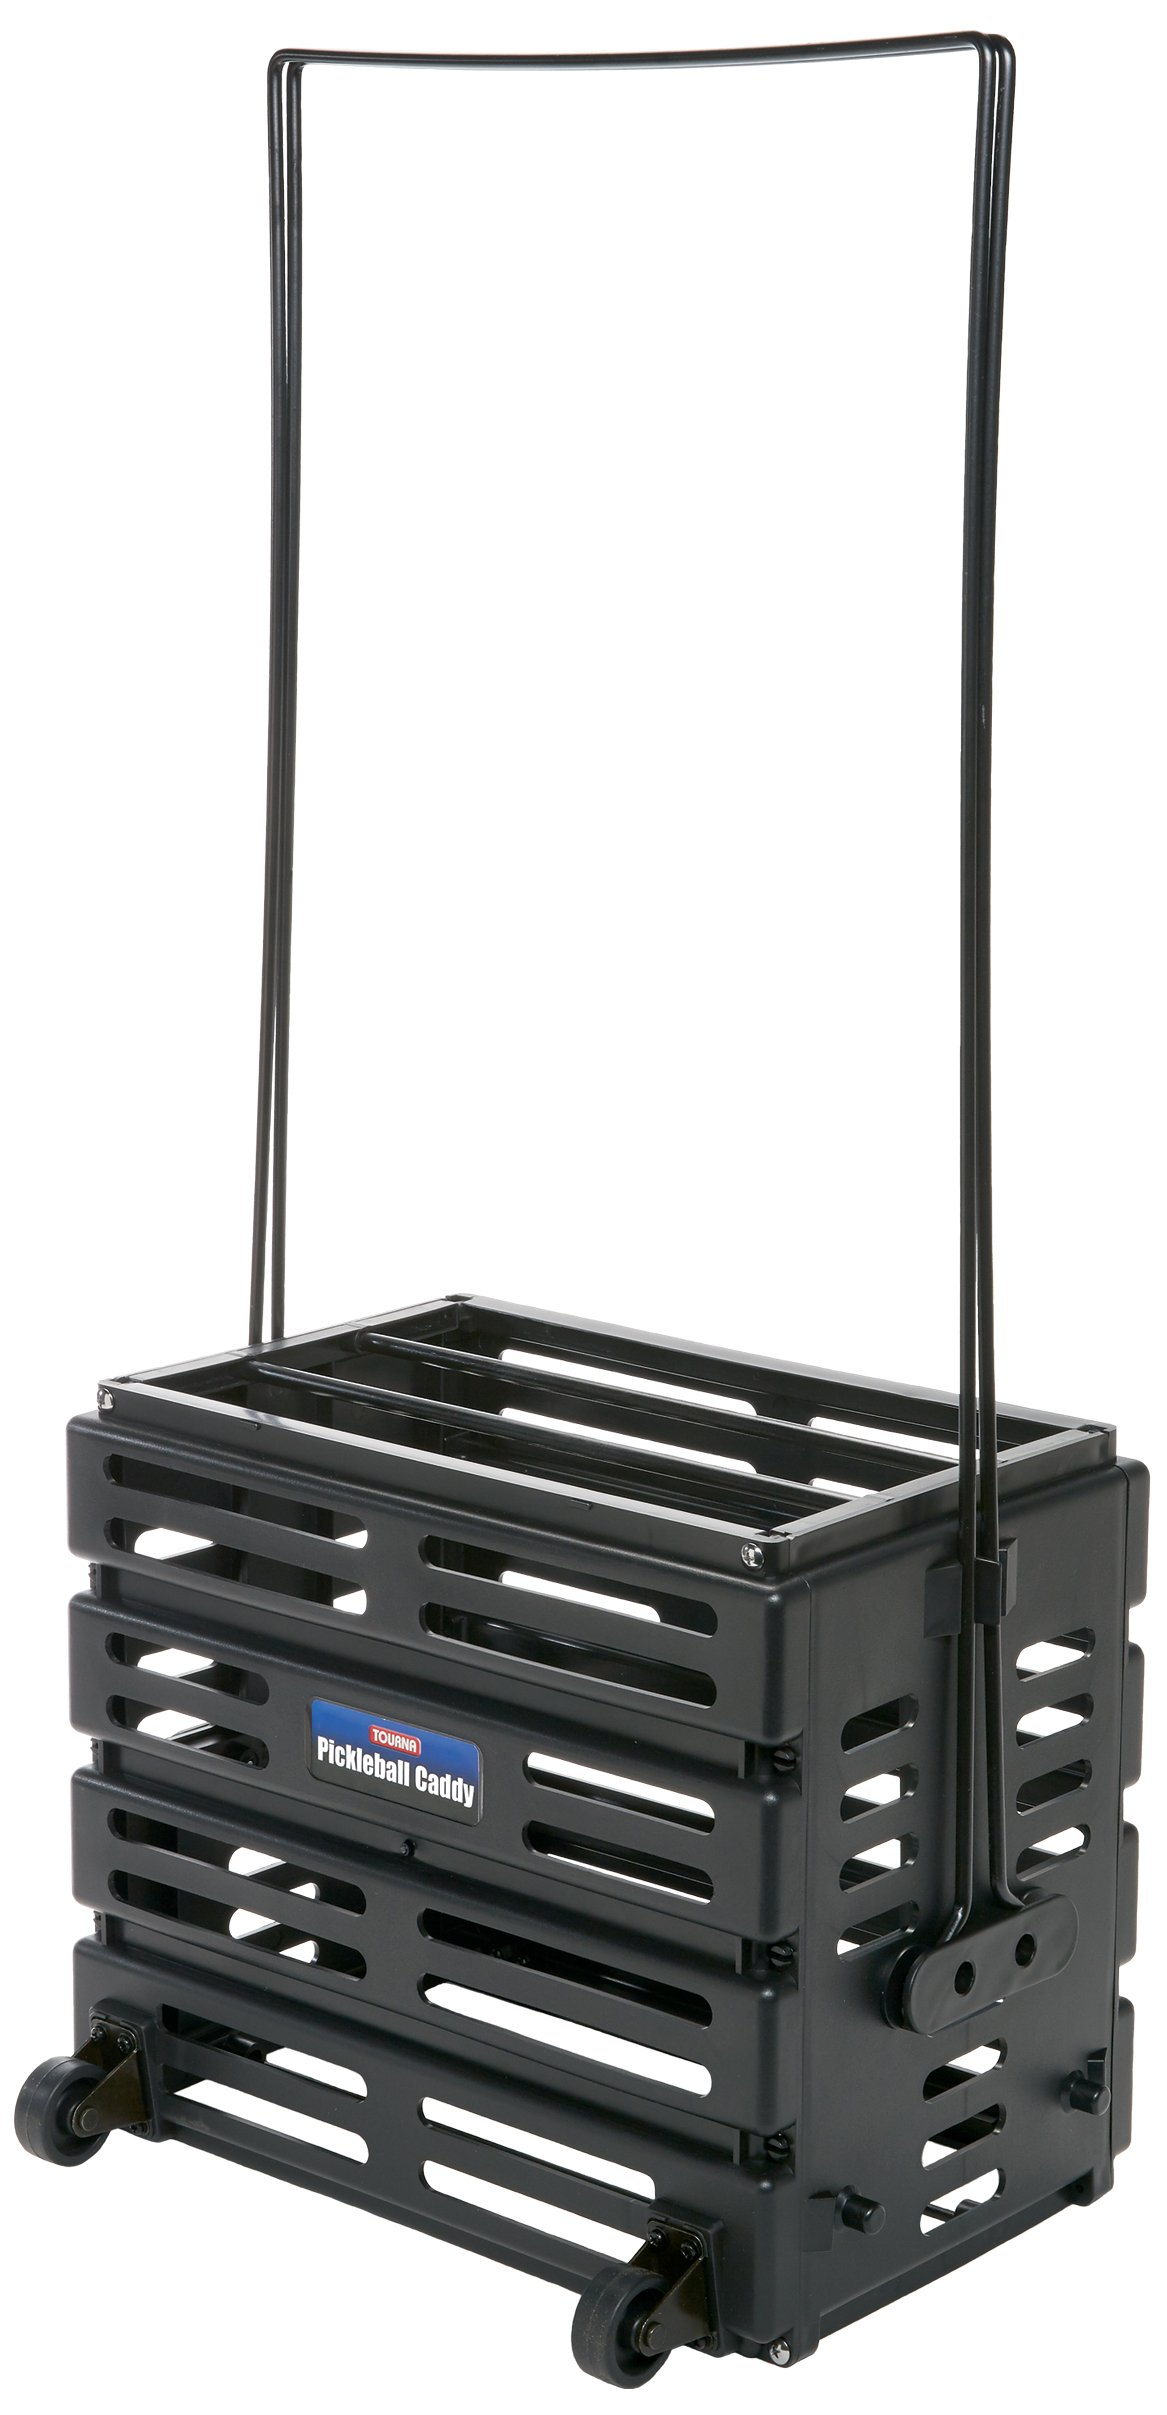 Tourna Pickleball Deluxe Caddy by Tourna